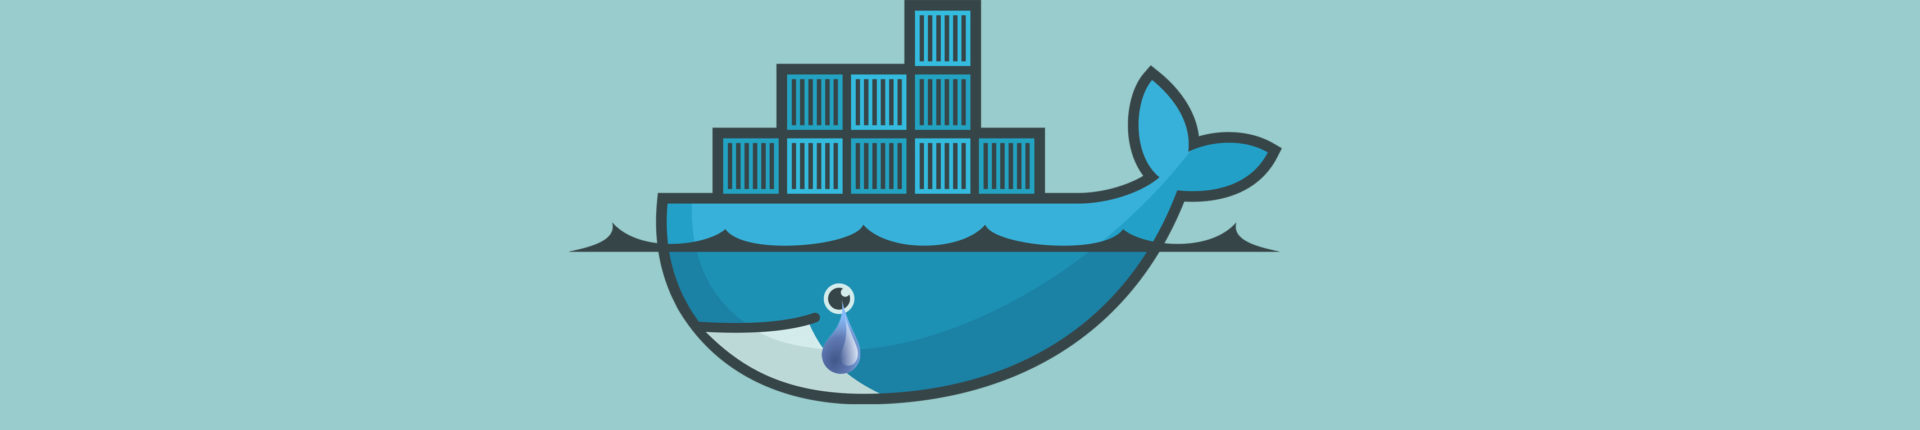 Docker's acquisition by Mirantis: What this means for both companies